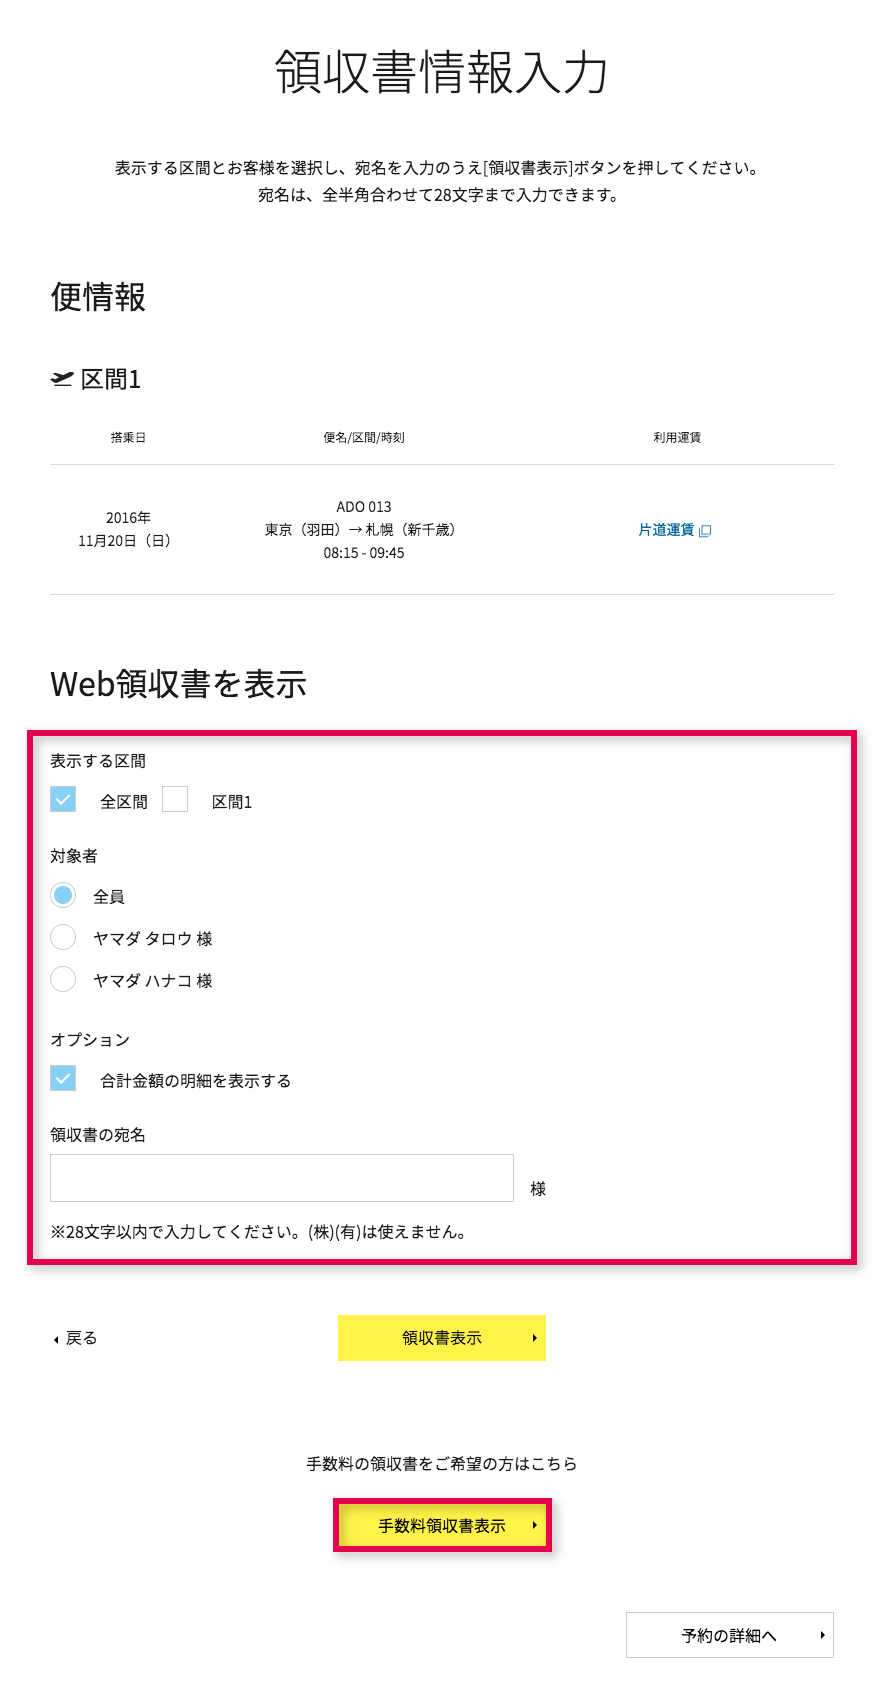 Web Receipt Data Display Service Issuance Of Receipts Purchases And Receipts Ticket Reservations And Purchases Official Airdo Website Visit Airdo For Reserving Airplane Tickets To And From Hokkaido